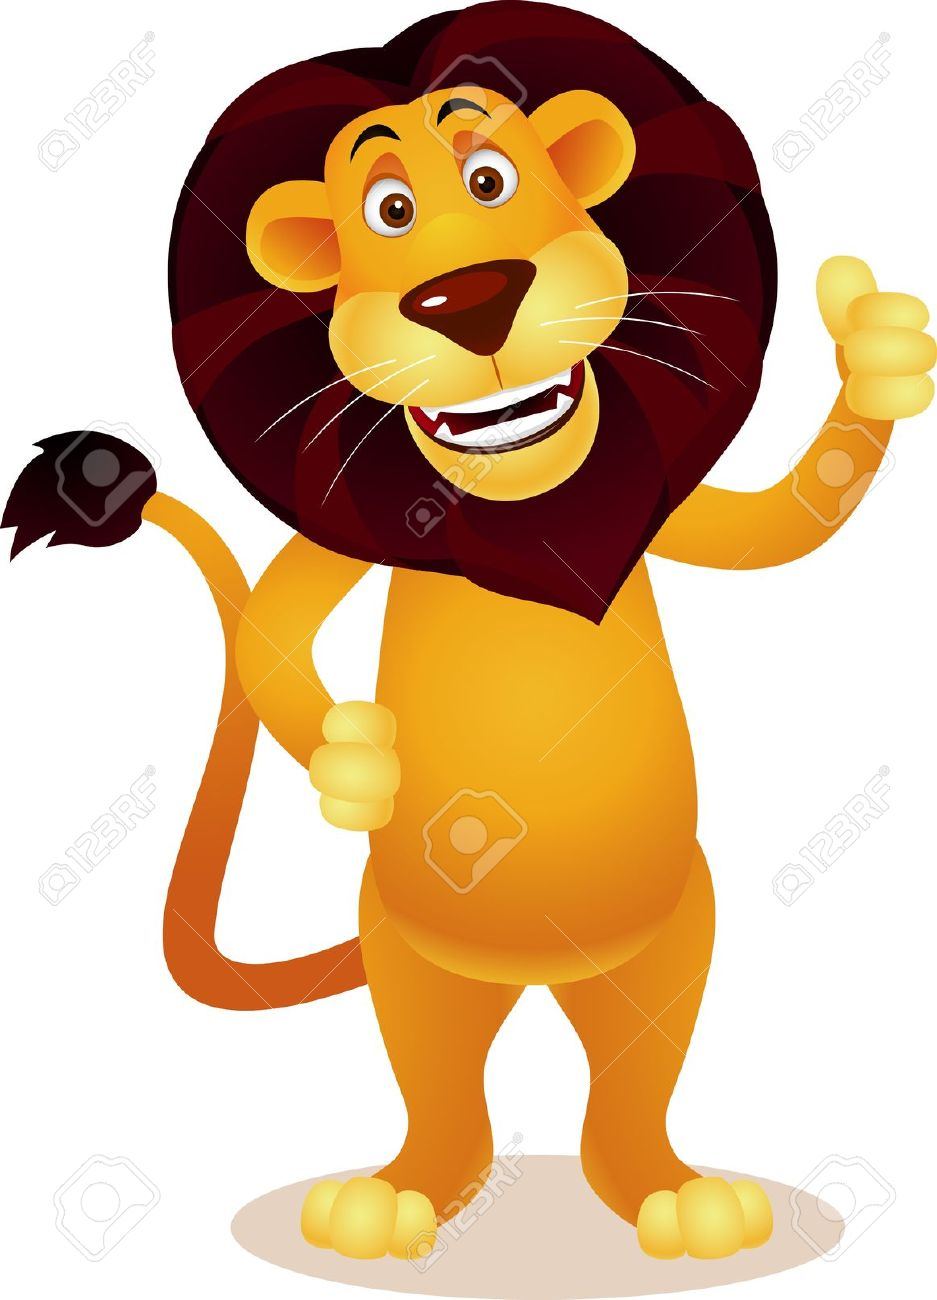 Lion clipart funny #2